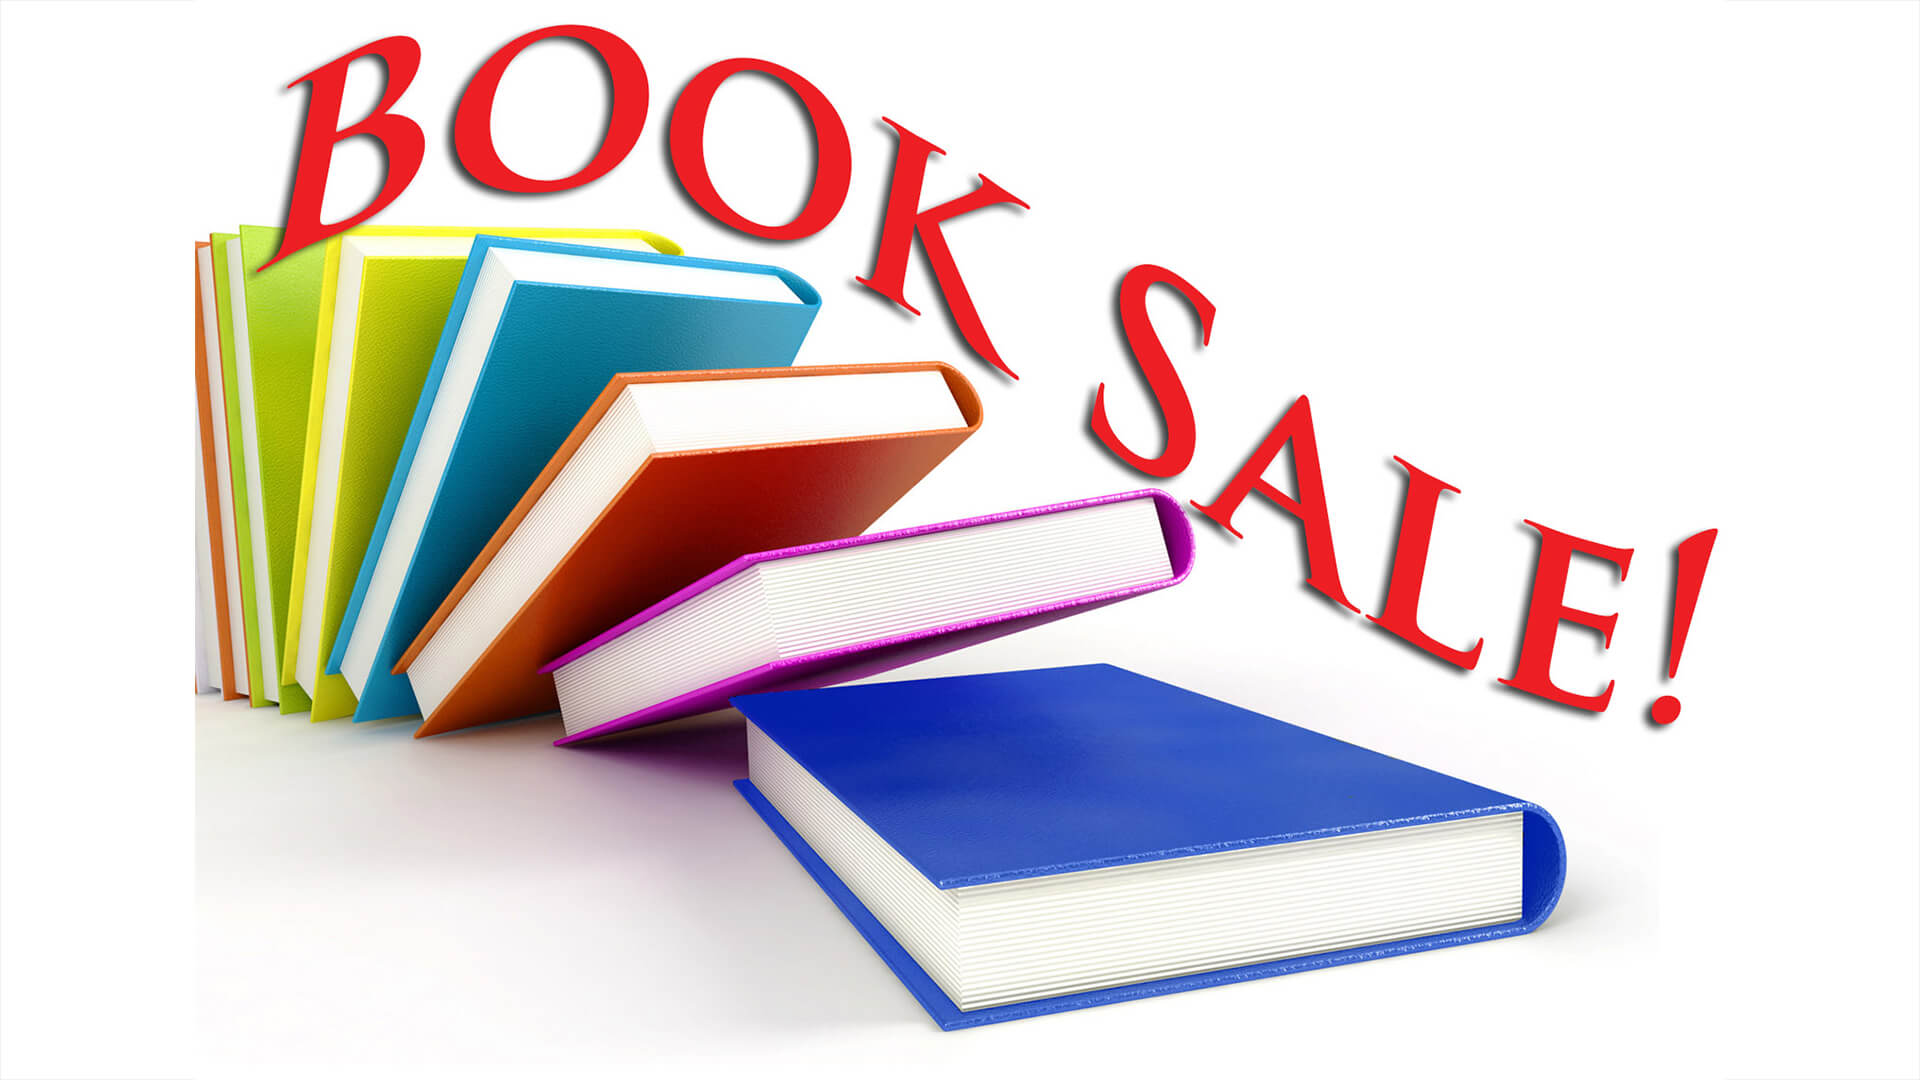 Book sale clipart 2 » Clipart Station.